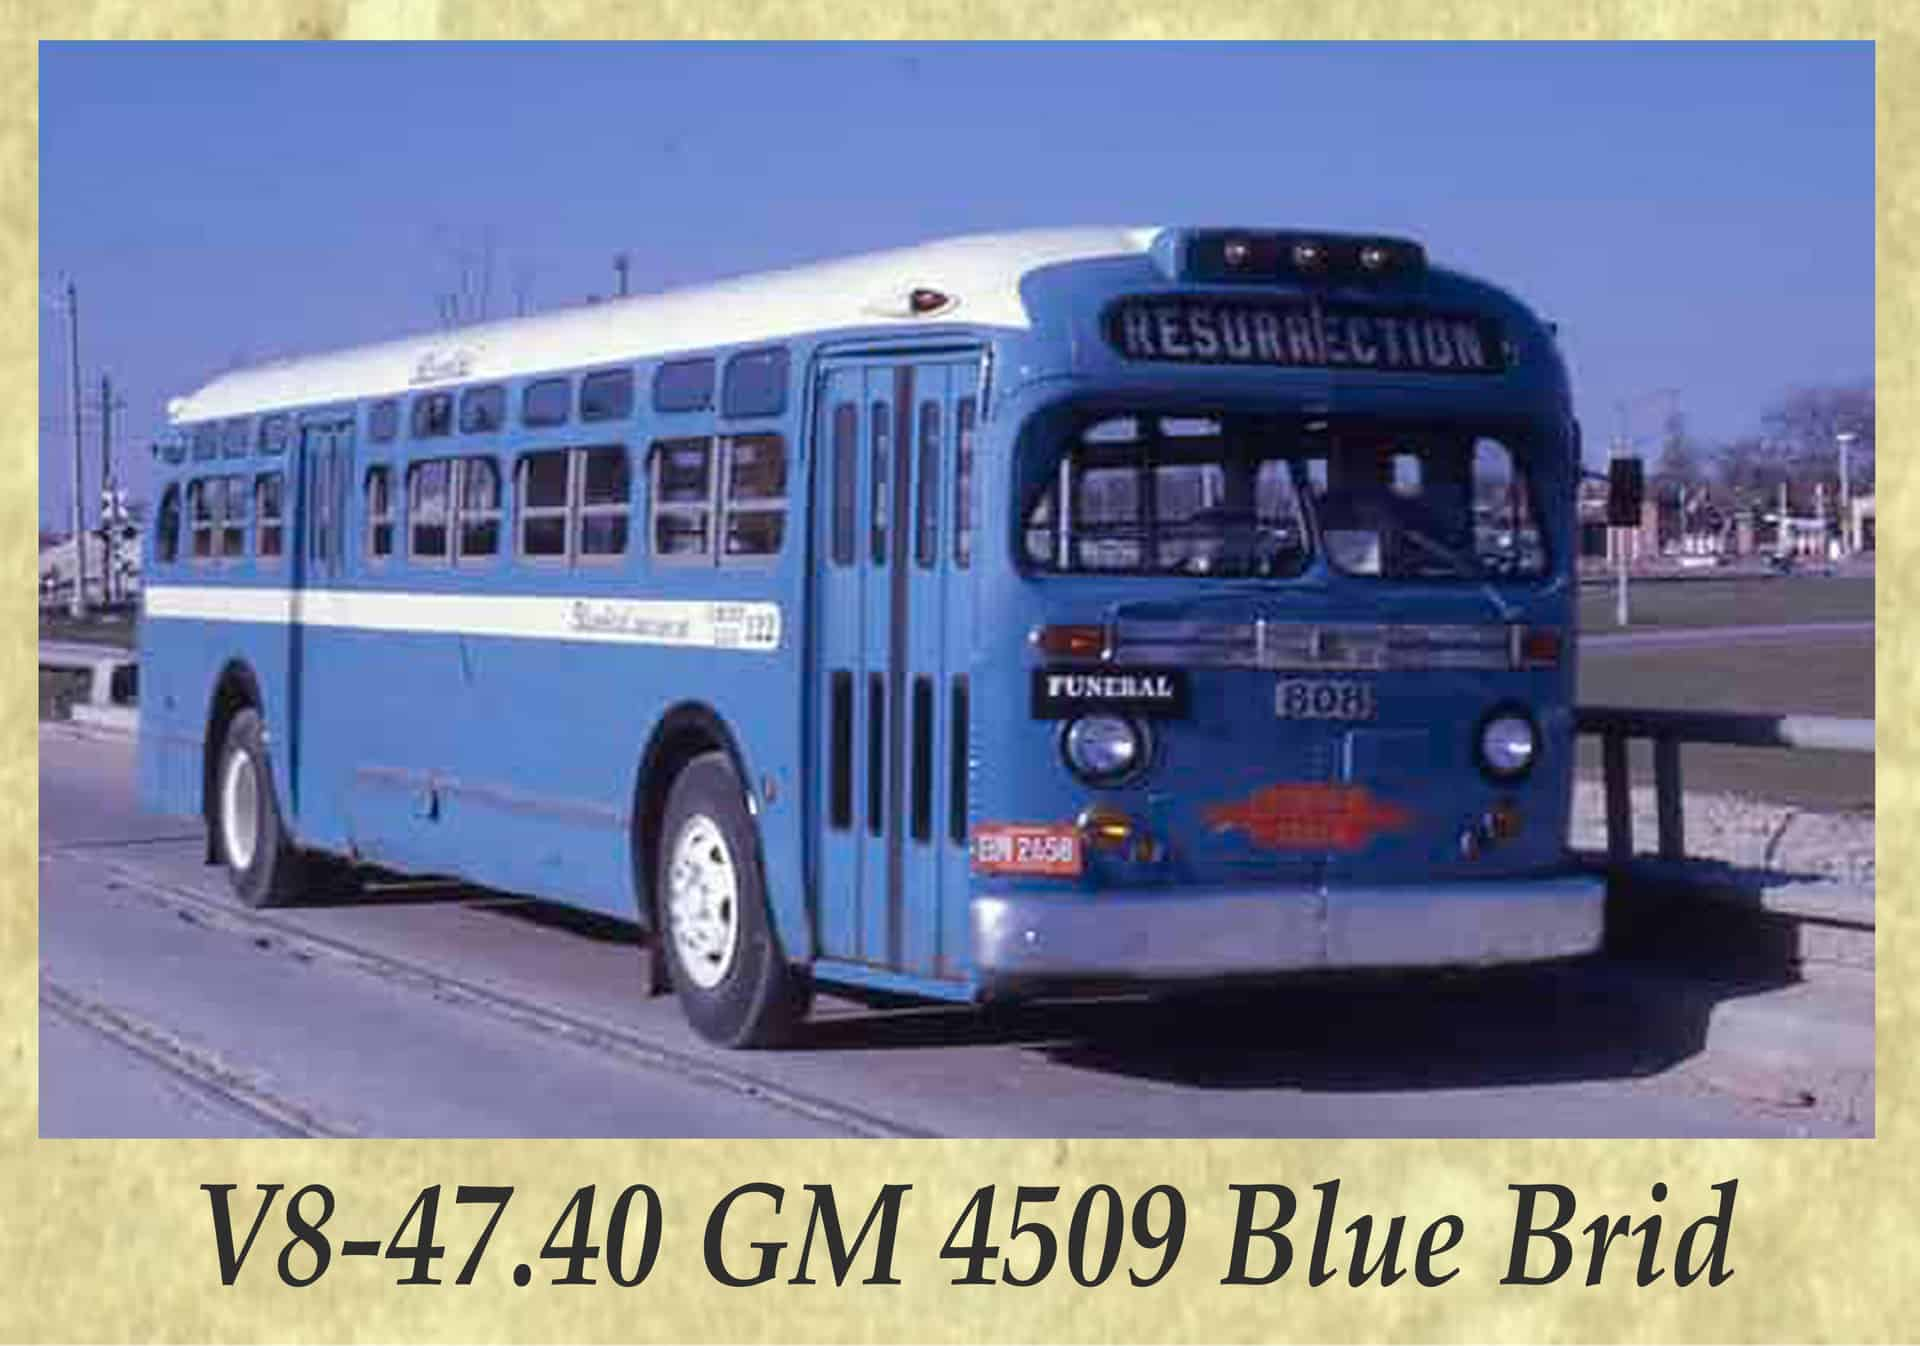 V8-47.40 GM 4509 Blue Brid